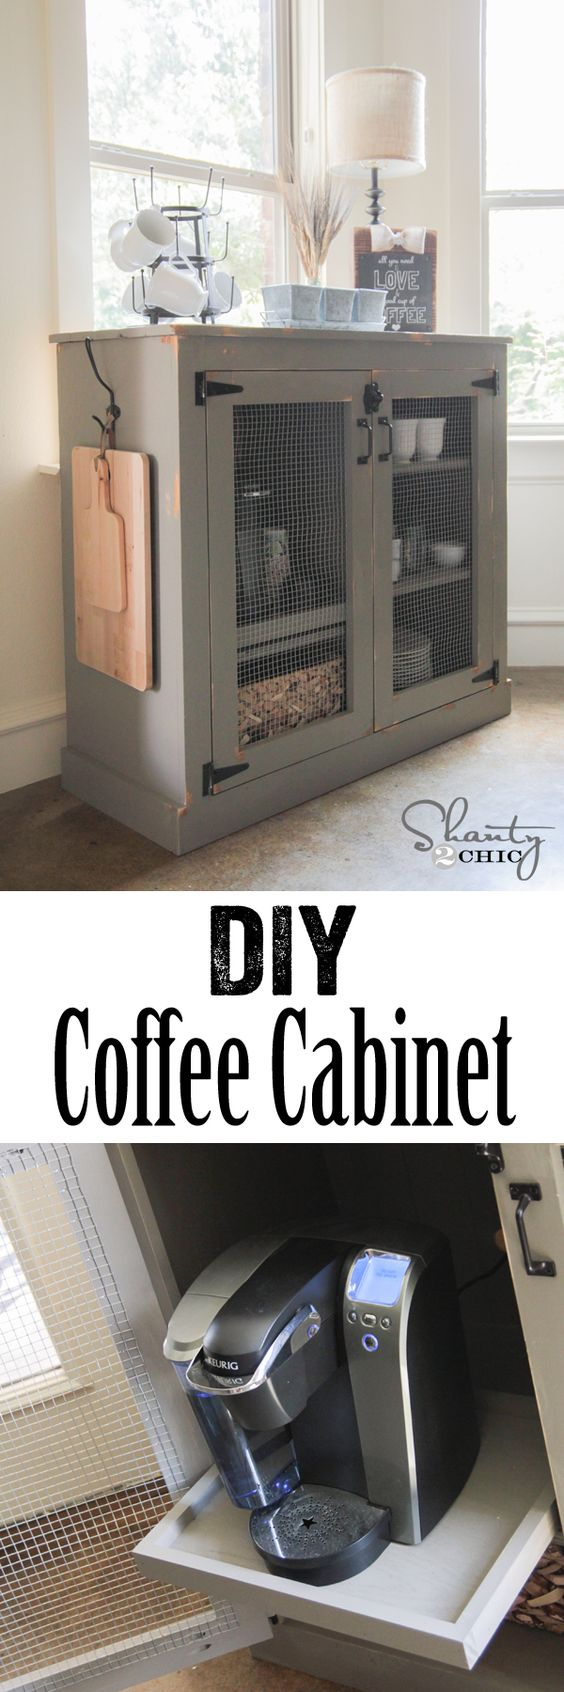 Free DIY Furniture Project Plan: Learn How to Build a Coffee Cabinet // Shanty-2-Chic.com: